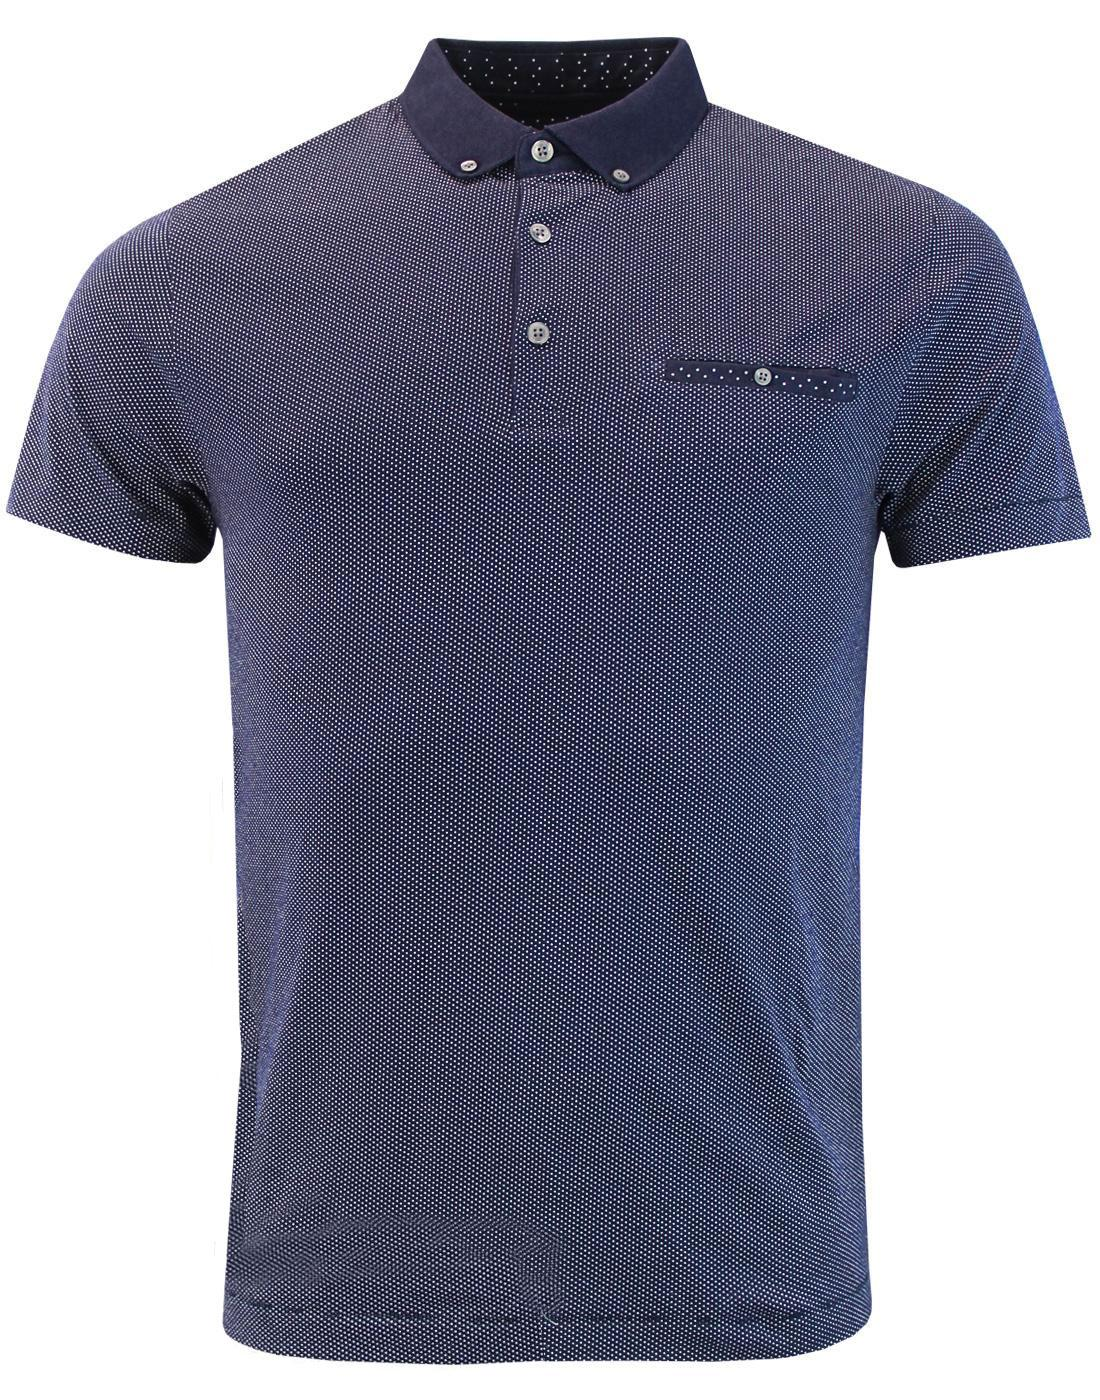 FRENCH CONNECTION Retro Mod Classic Ditsy Dot Polo